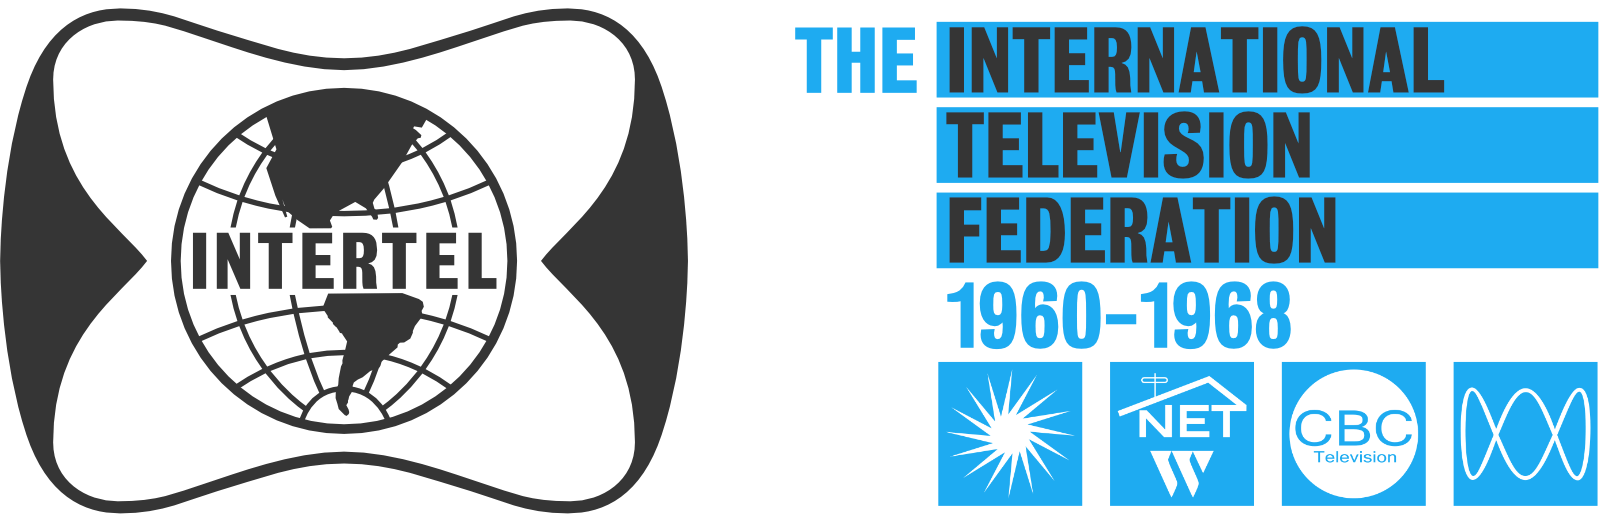 Intertel | Rediffusion, the ABC, NET, Westinghouse and the CBC | Transdiffusion presentation